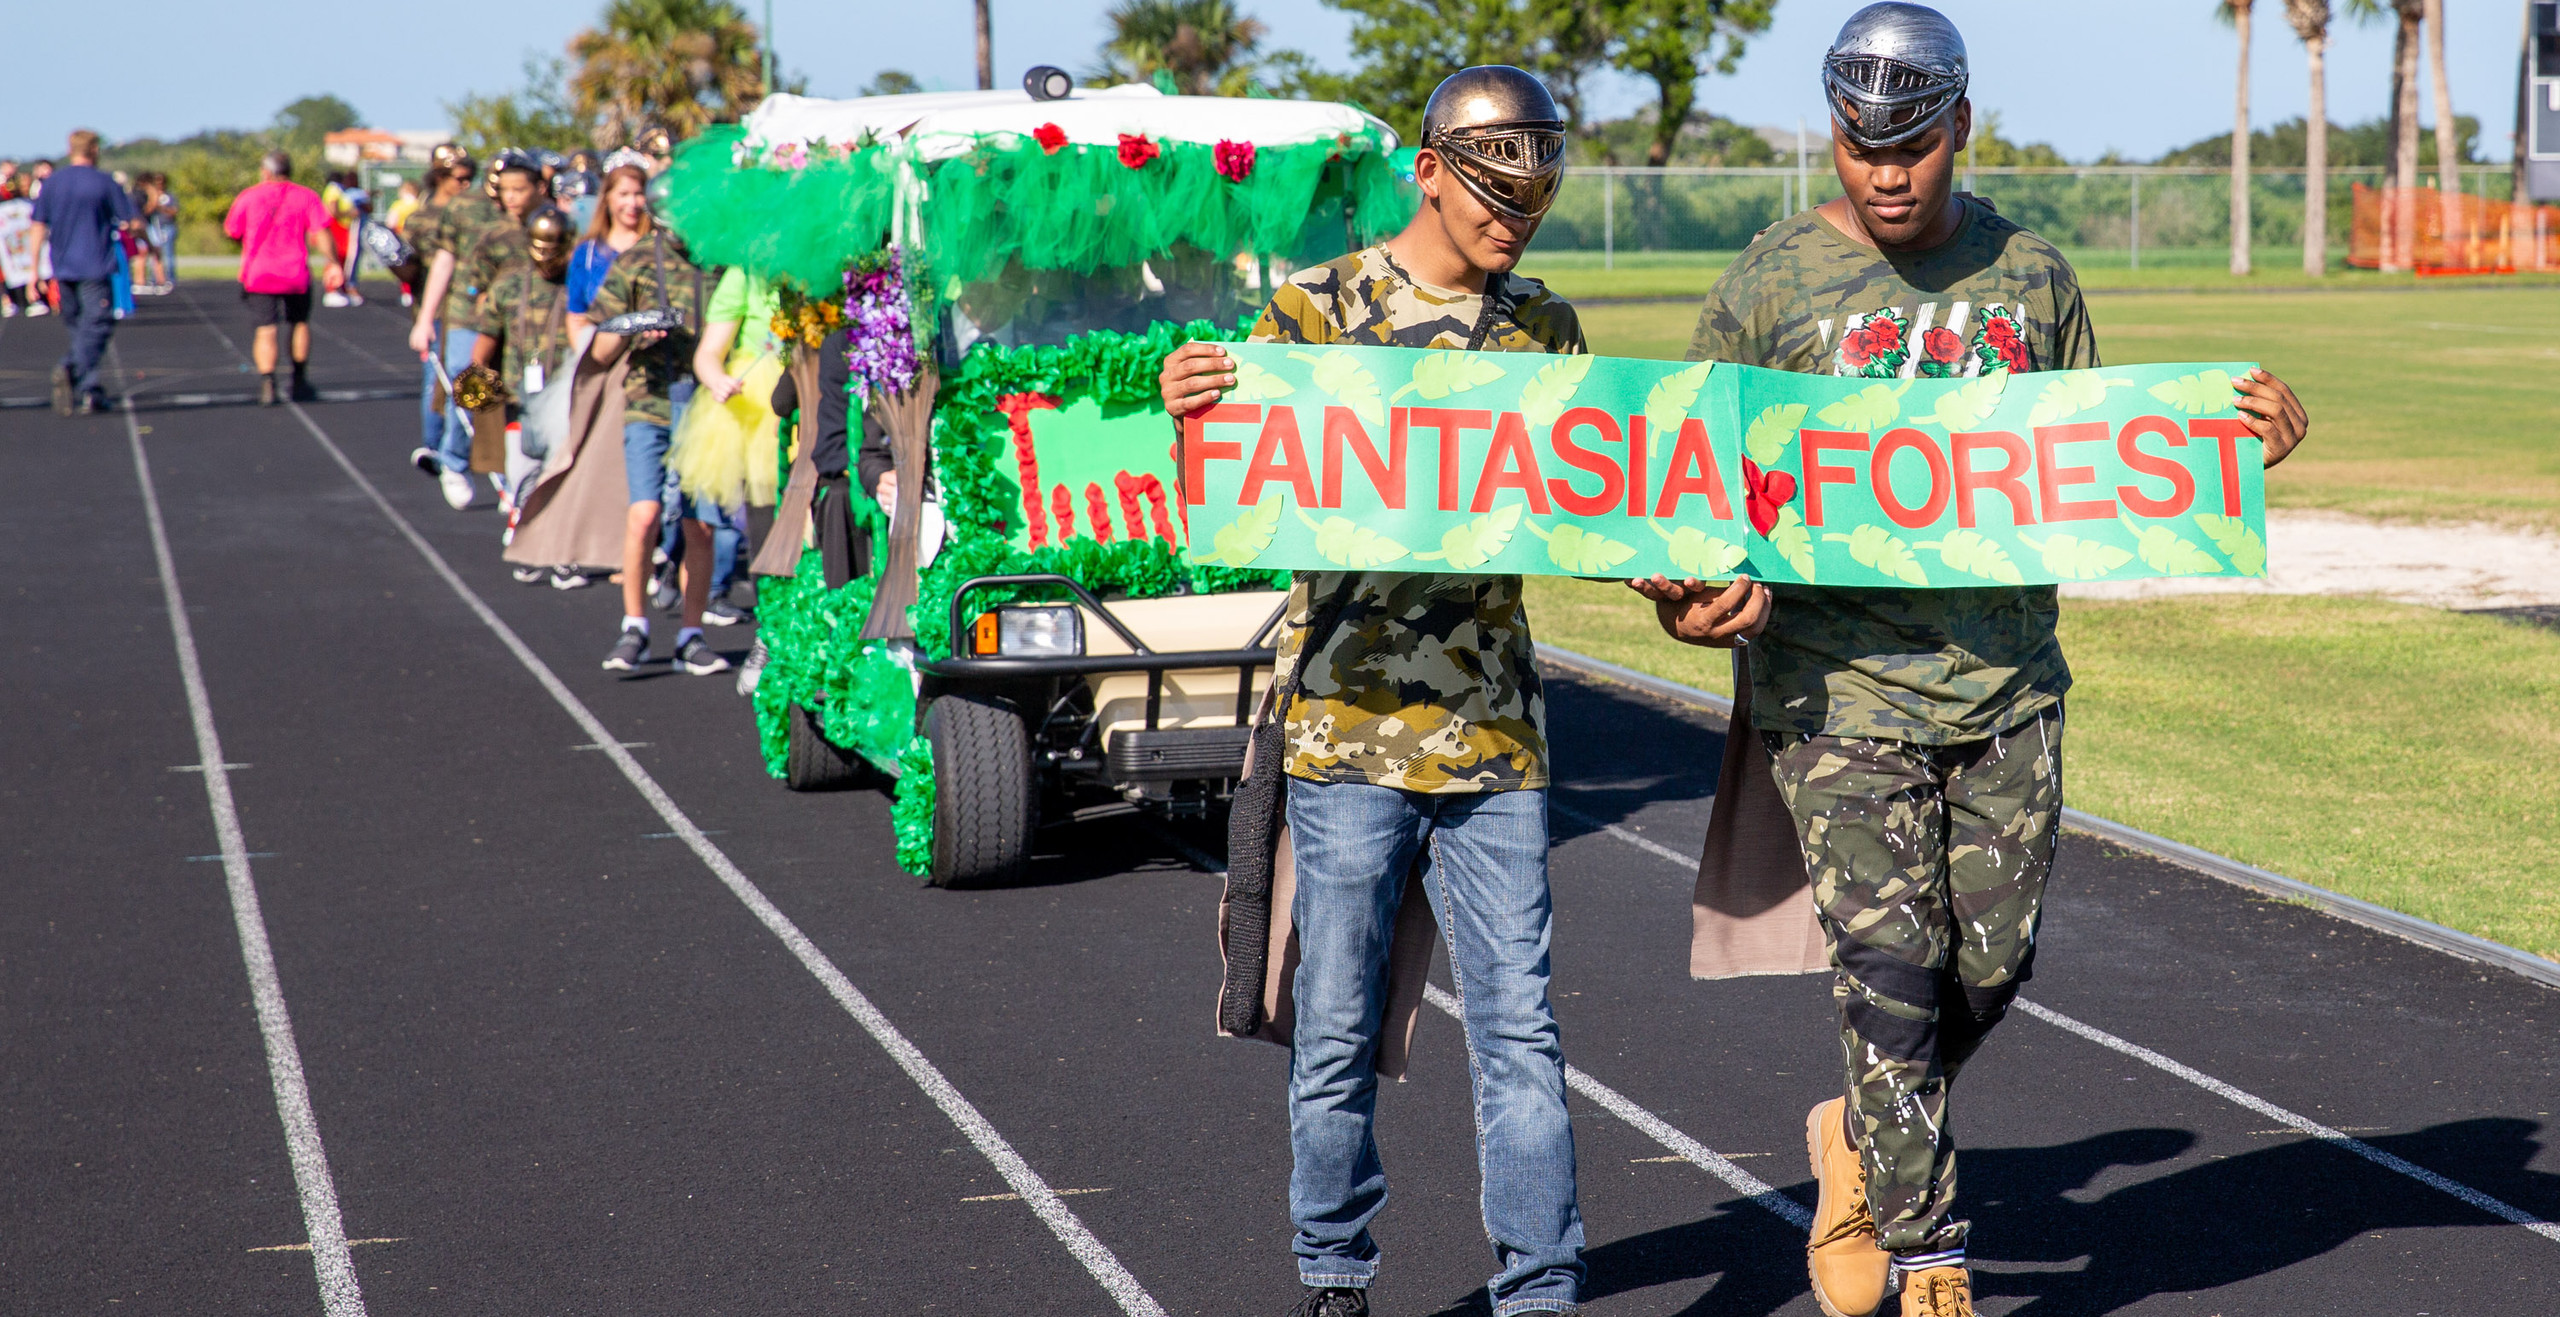 """Junior class marching down track with a decorated golf cart and a sign that reads, """"Fantasia Forest"""""""